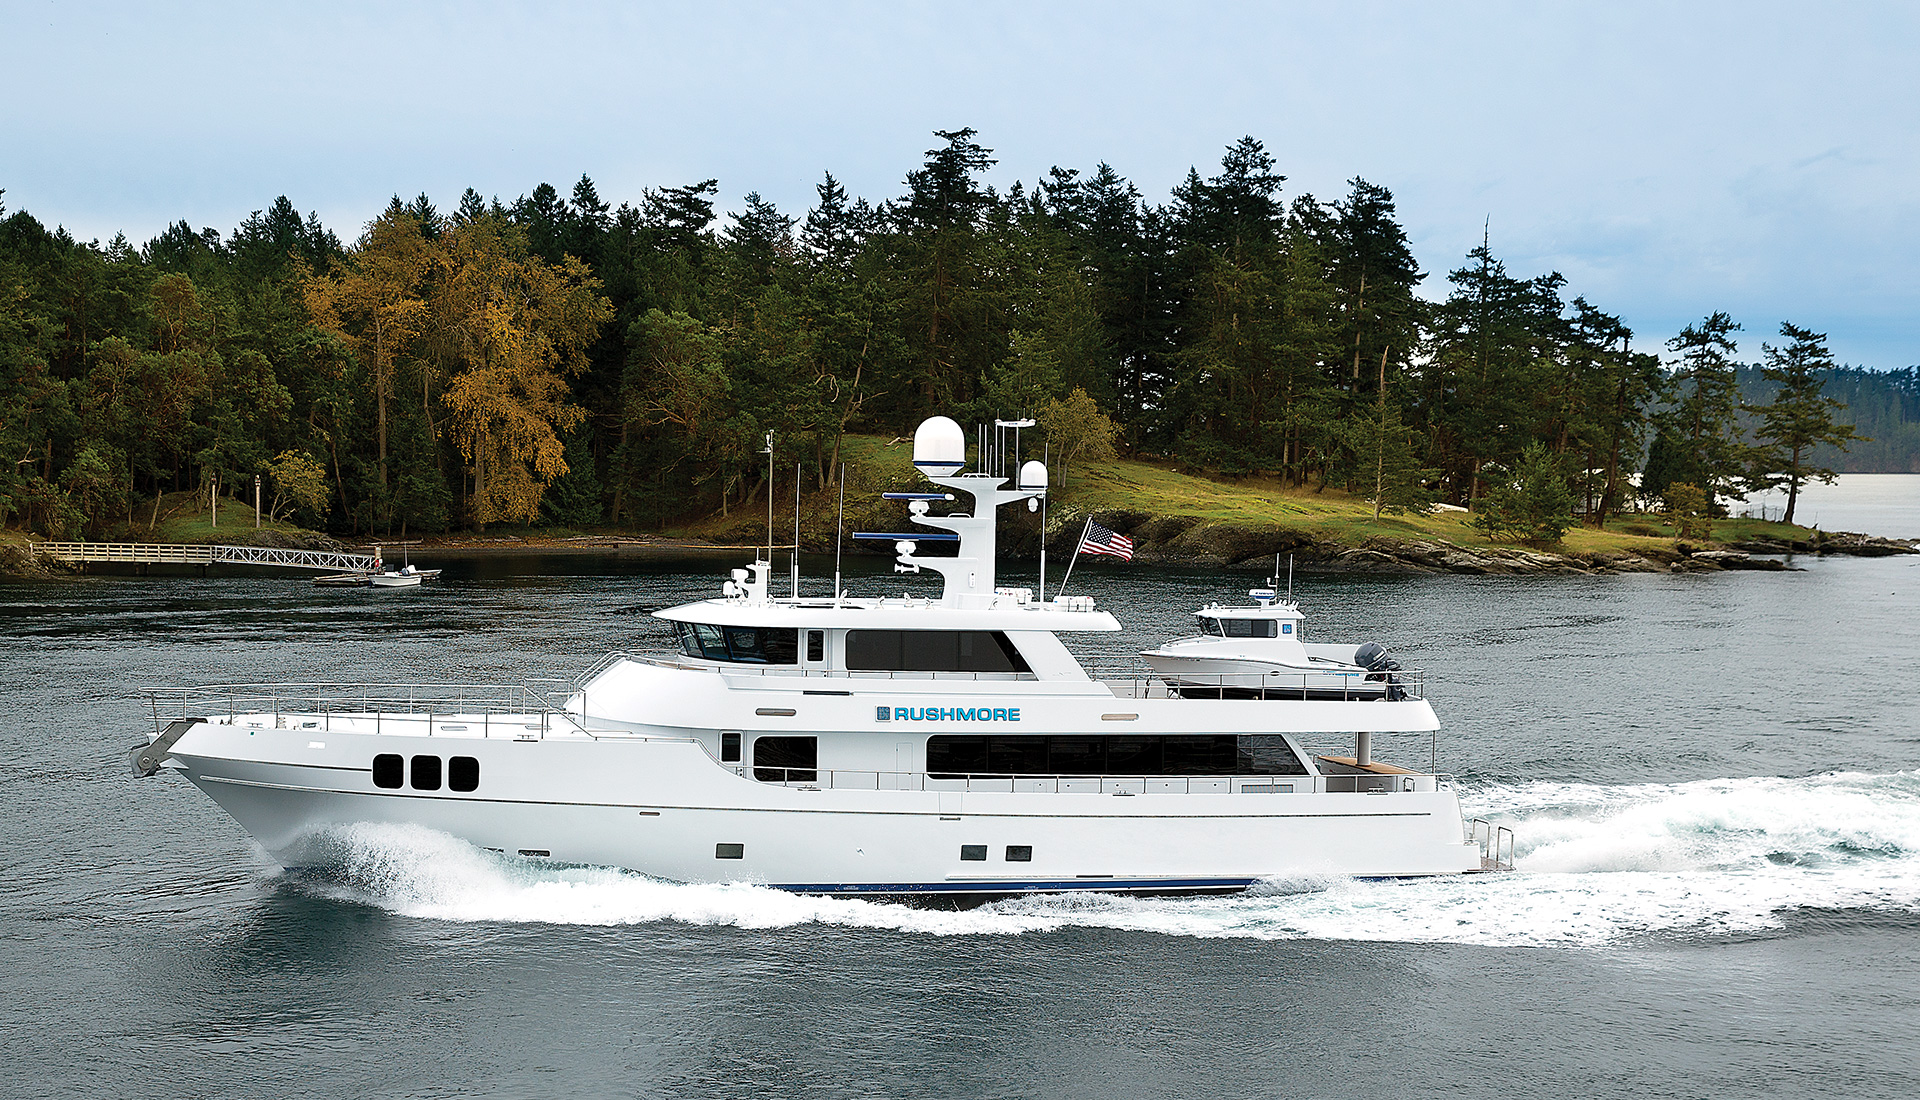 106' Yacht Rushmore Built by Nordlund Boat Company